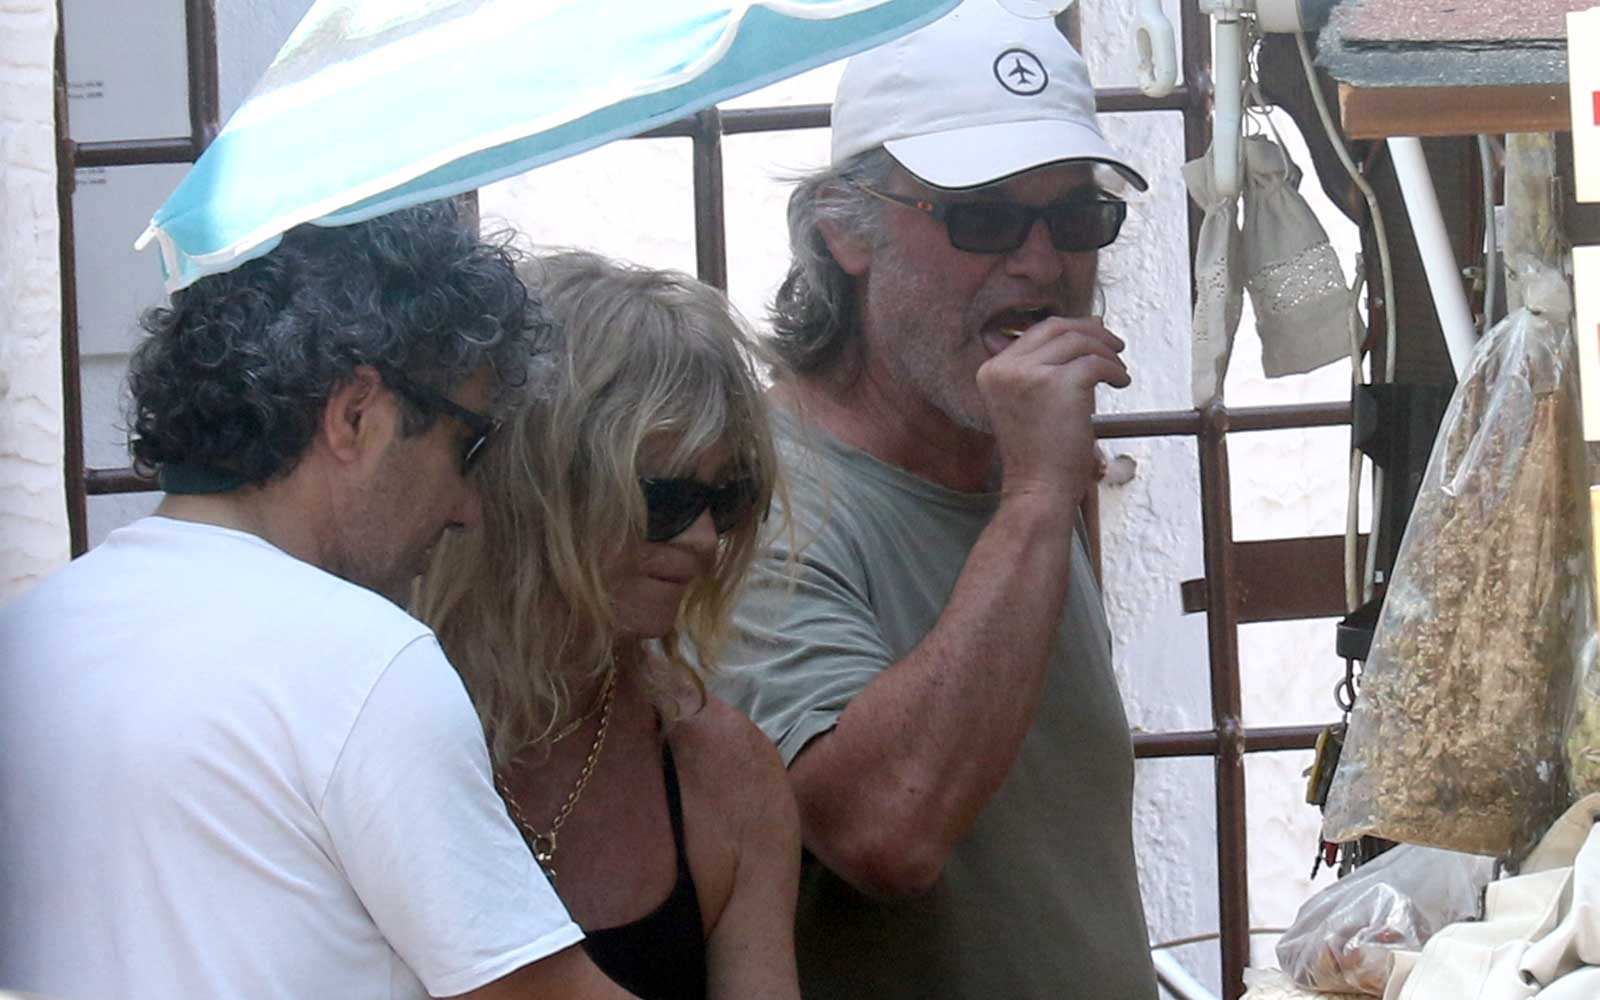 Kurt Russell and Goldie Hawn spotted on vacation on a Greek Island together.